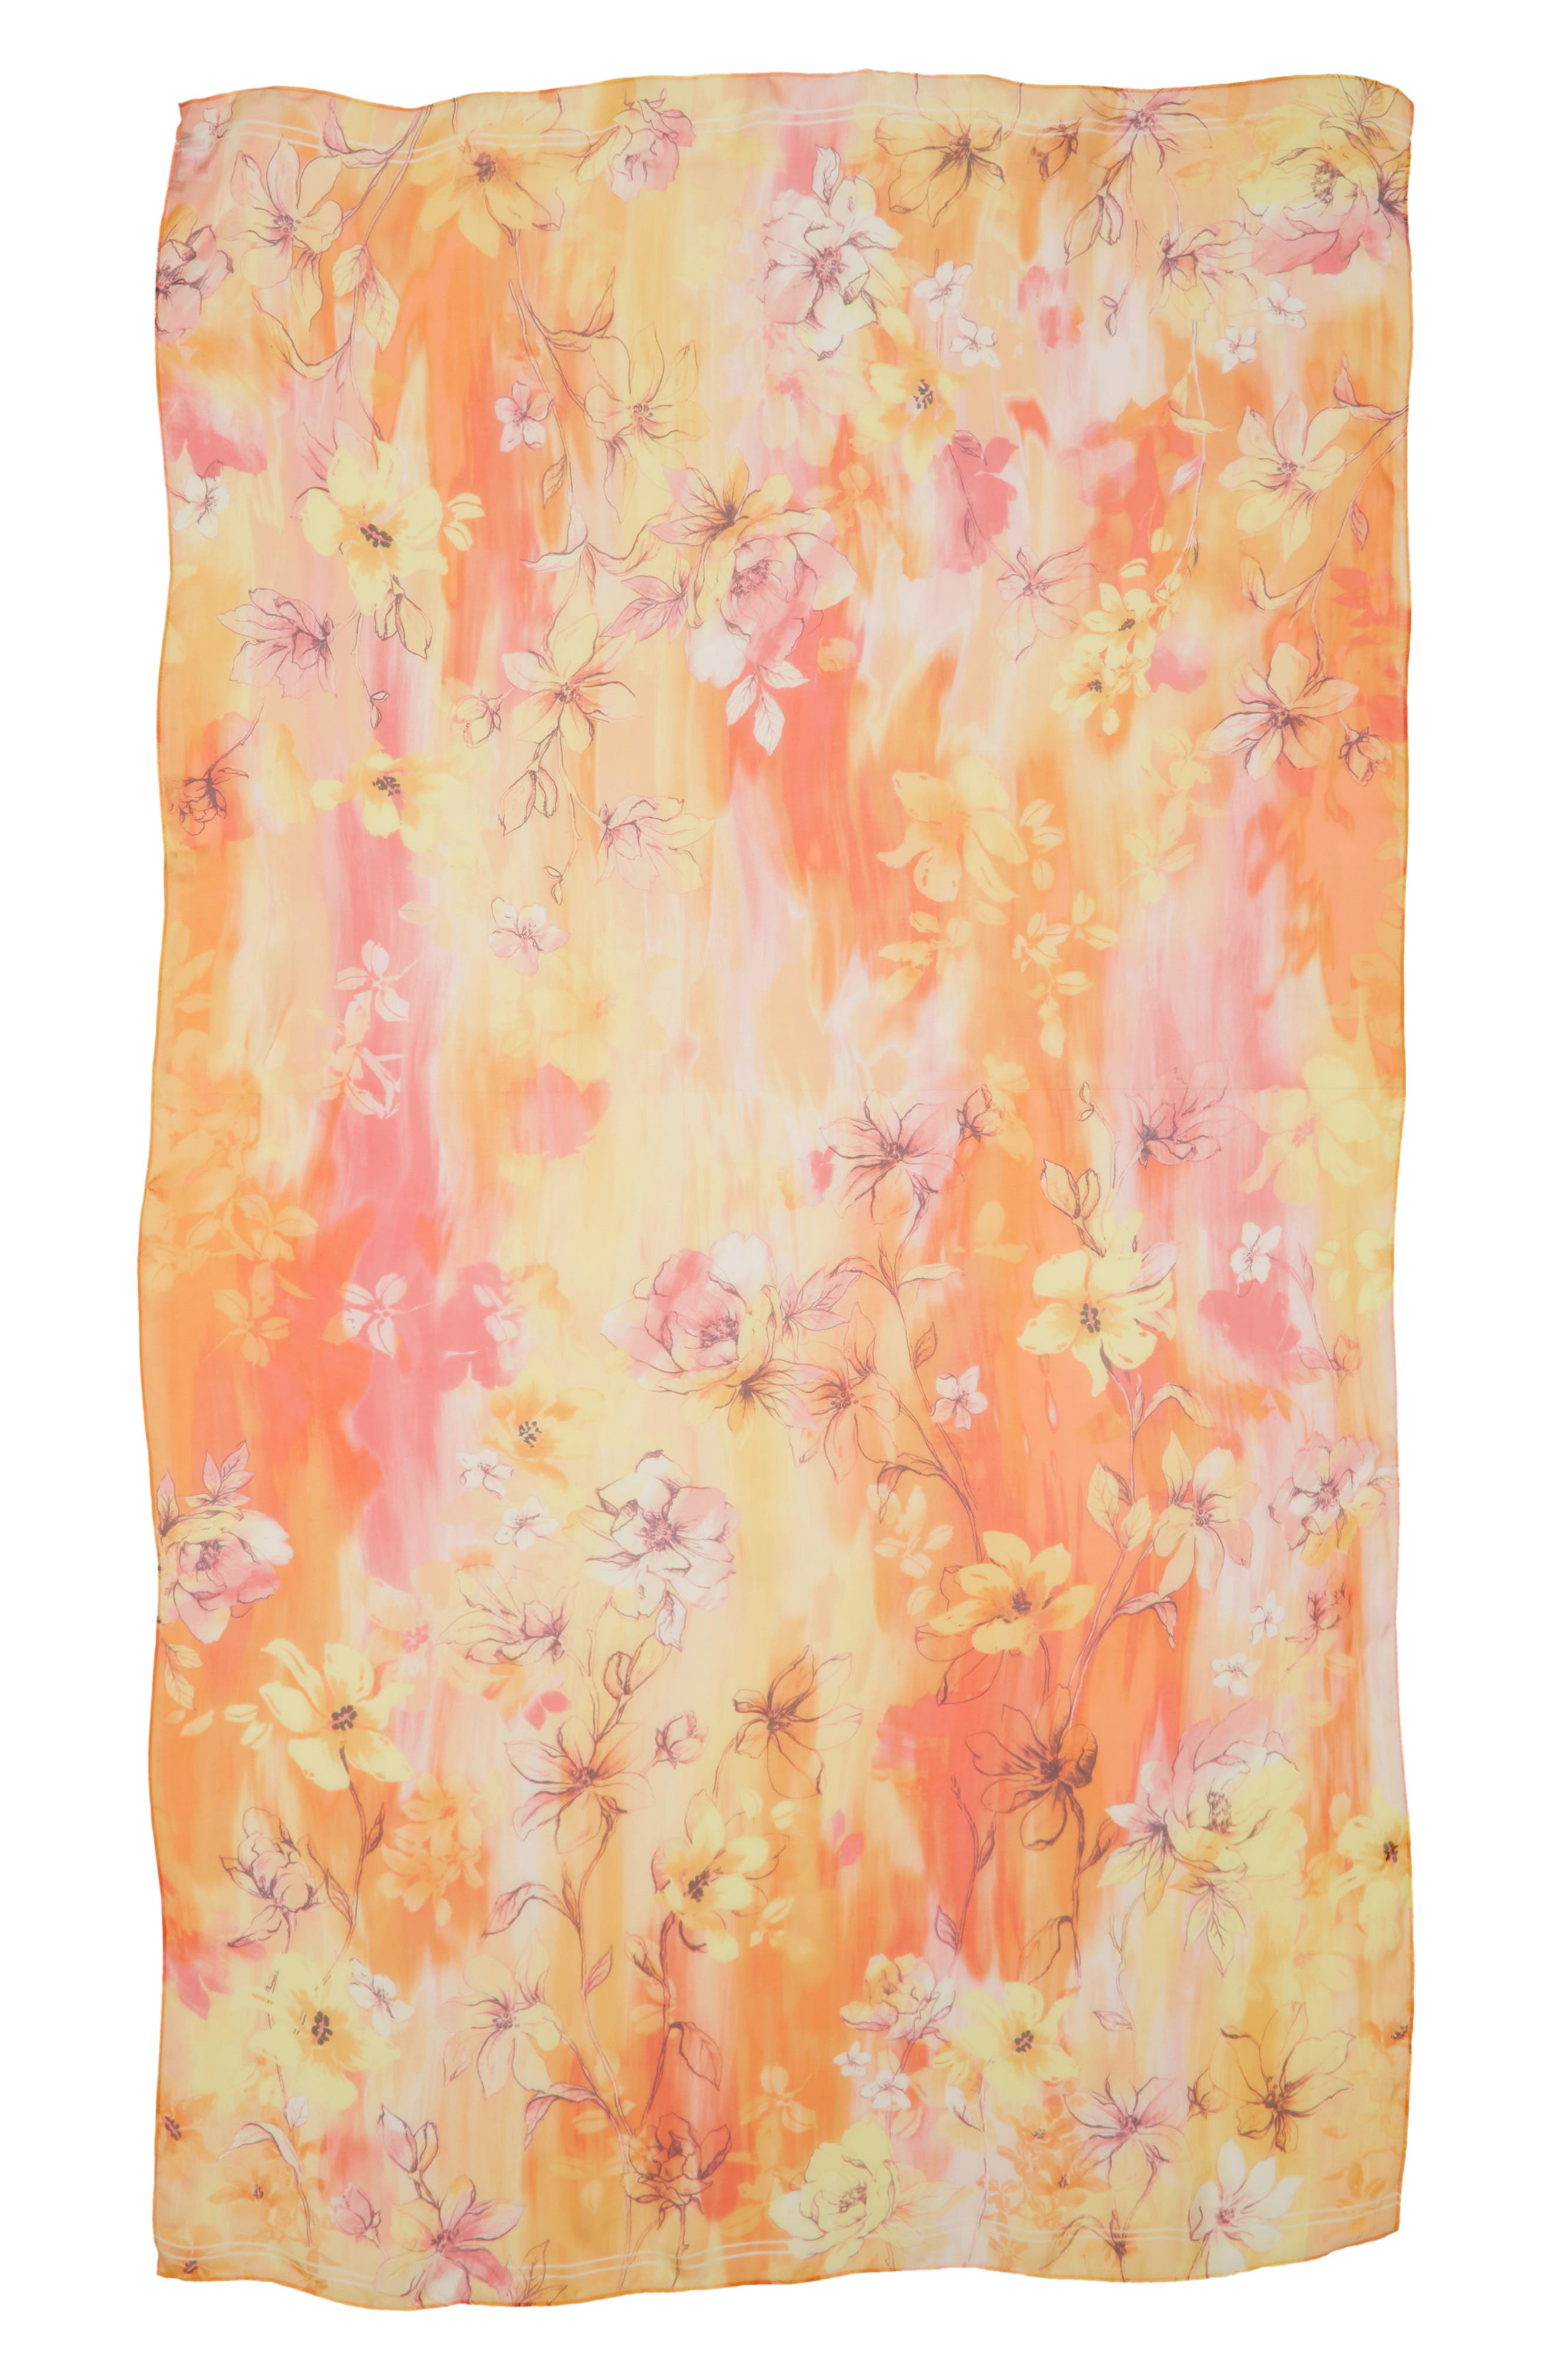 Silk Chiffon Oblong Scarf,                             Alternate thumbnail 2, color,                             Yellow Morningsong Floral